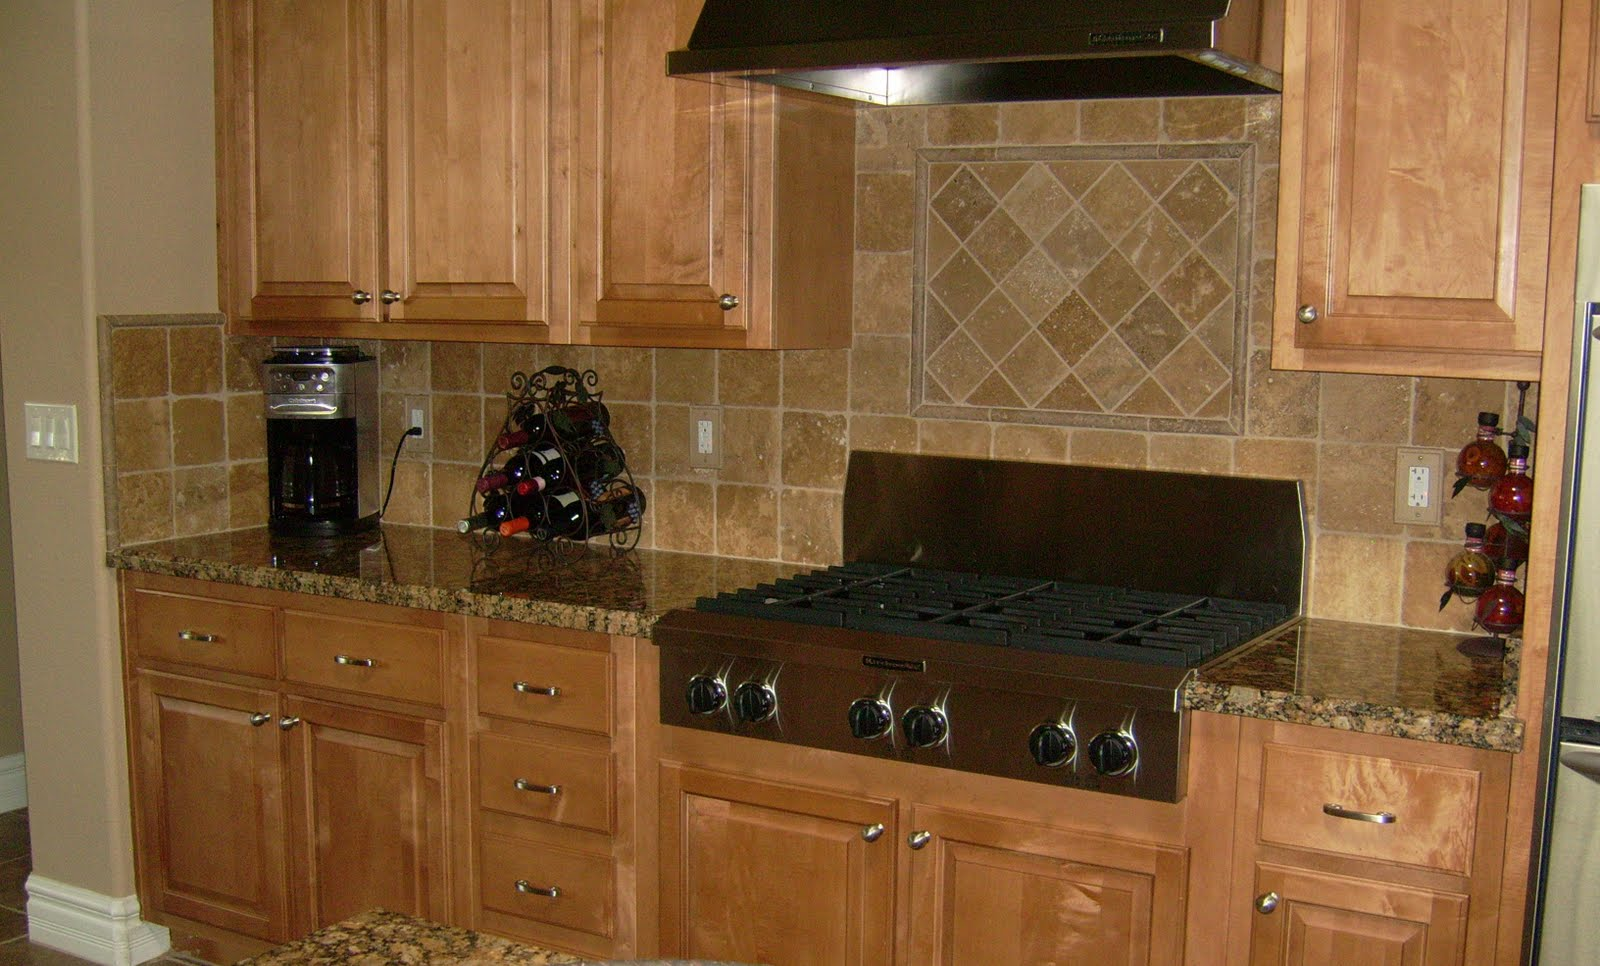 design ideas kitchen on Pictures Kitchen Backsplash Ideas 6x6 Tumbled Stone Kitchen Backsplash ...